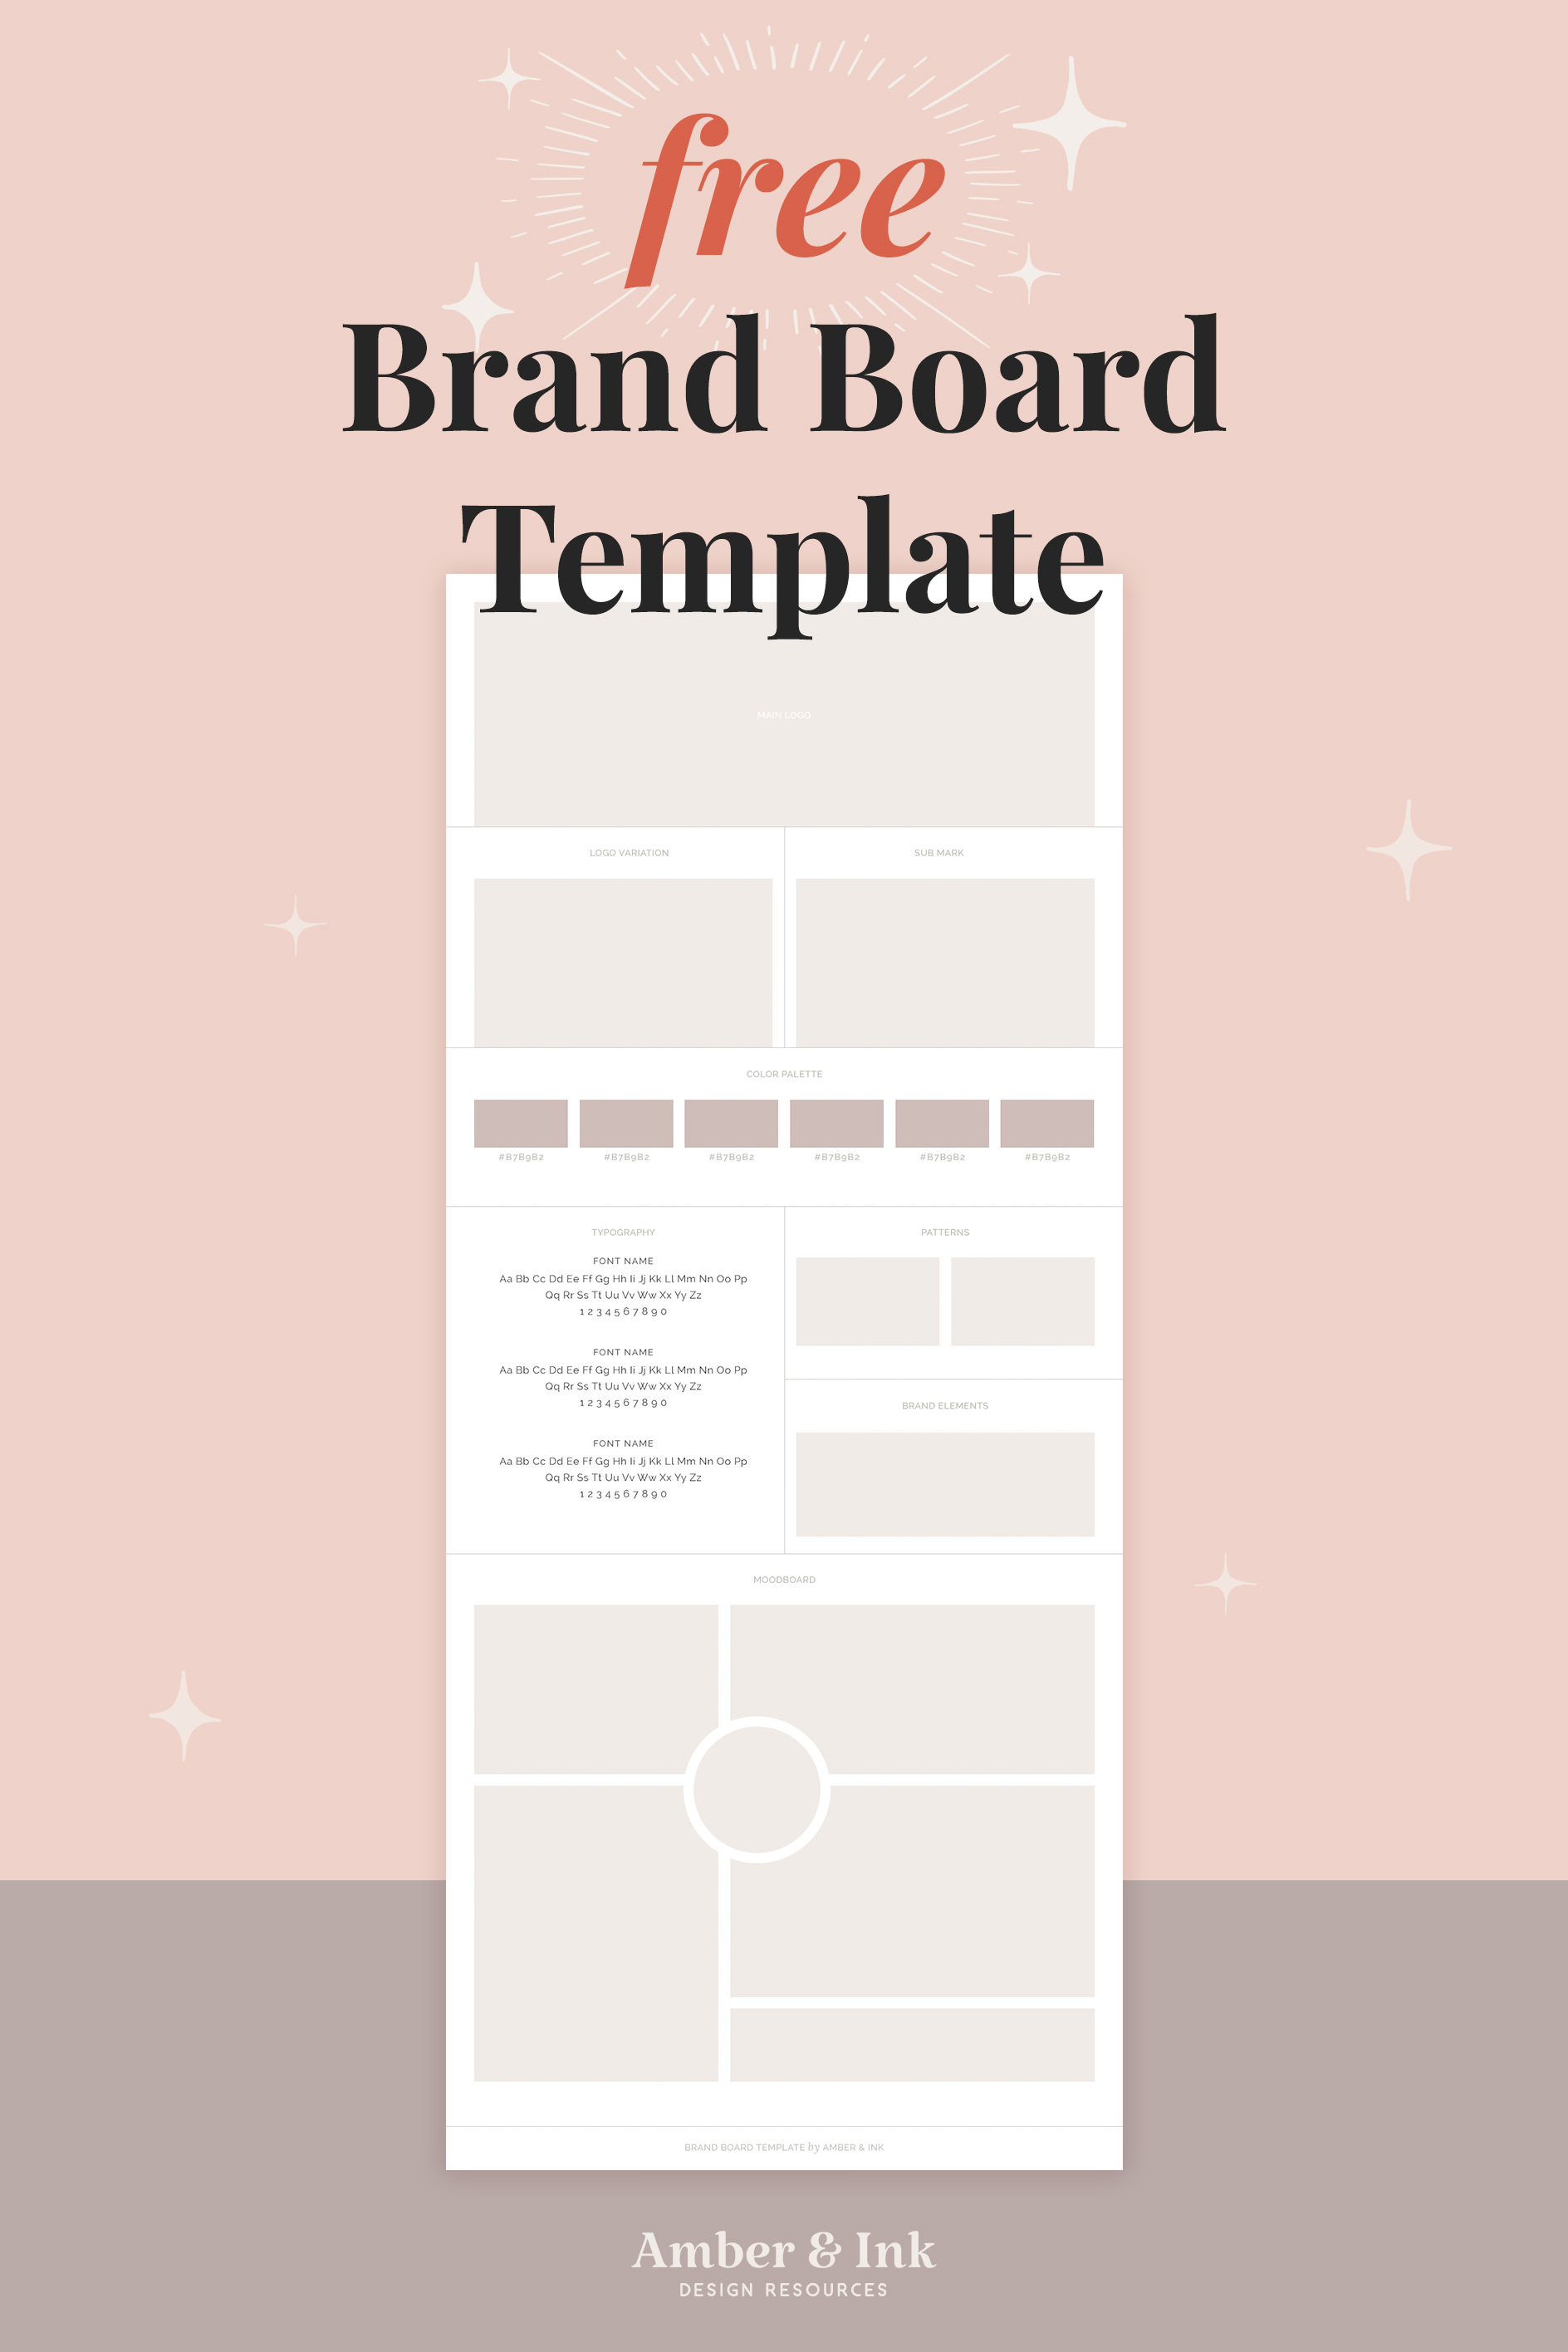 Free brand board template for Adobe Photoshop. Download link below.